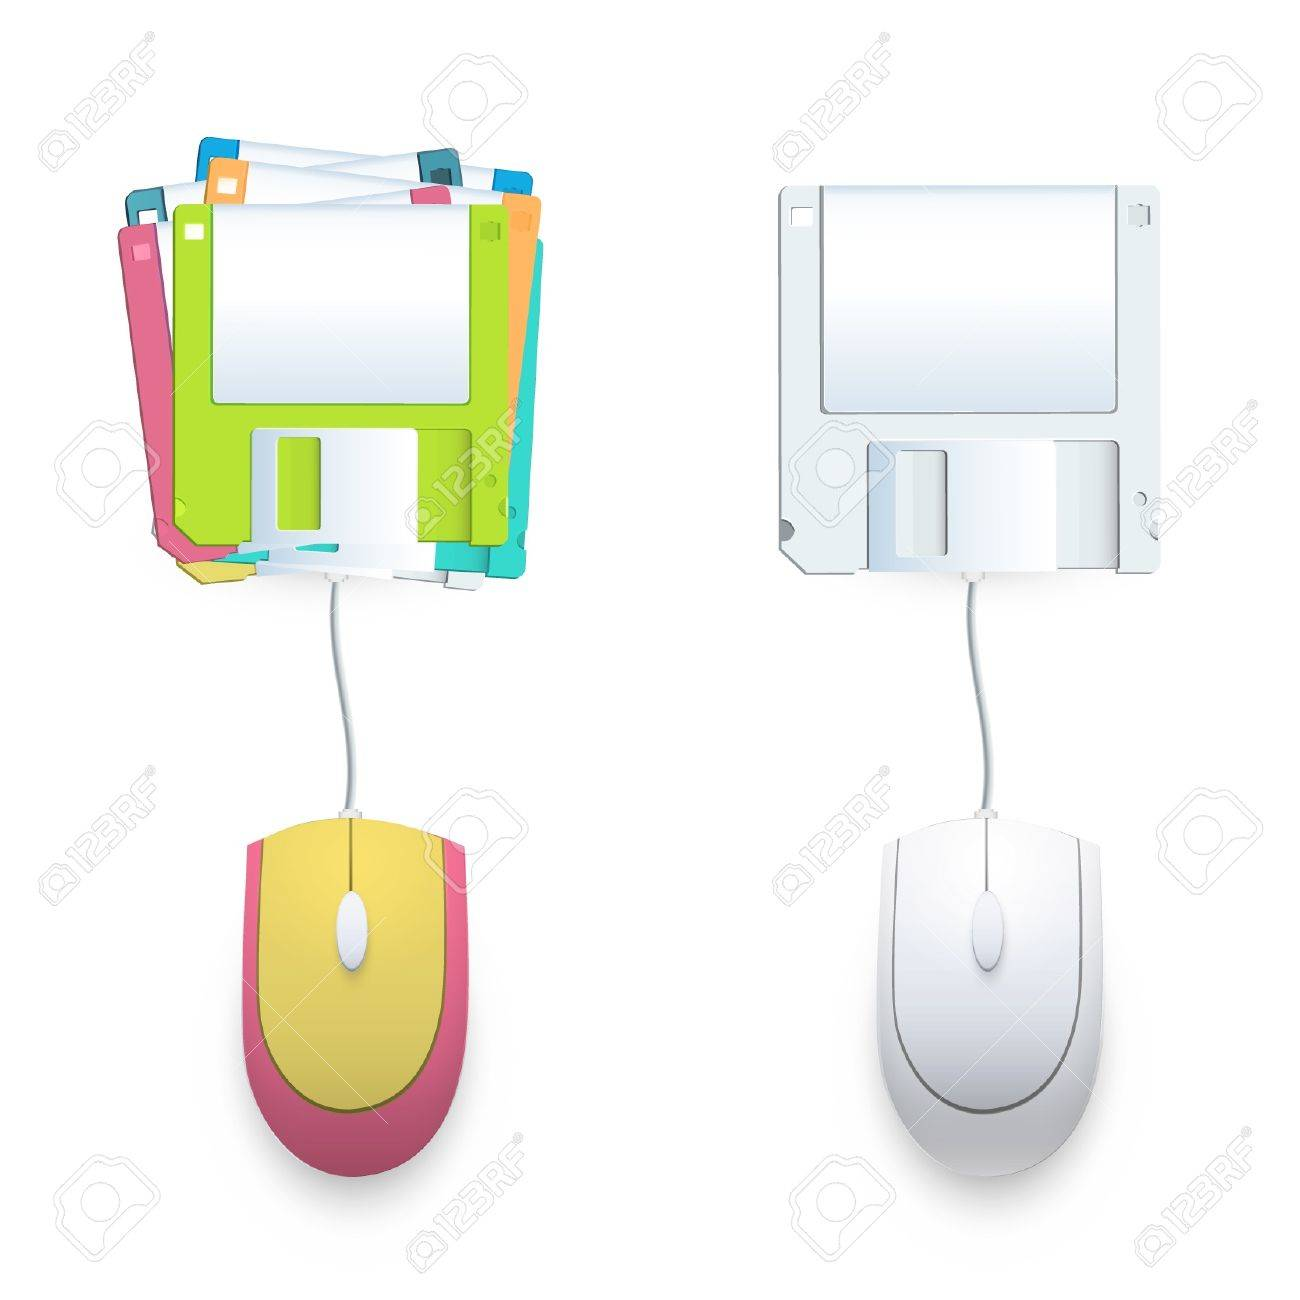 Computer mouse connected to a diskette Stock Vector - 17042445